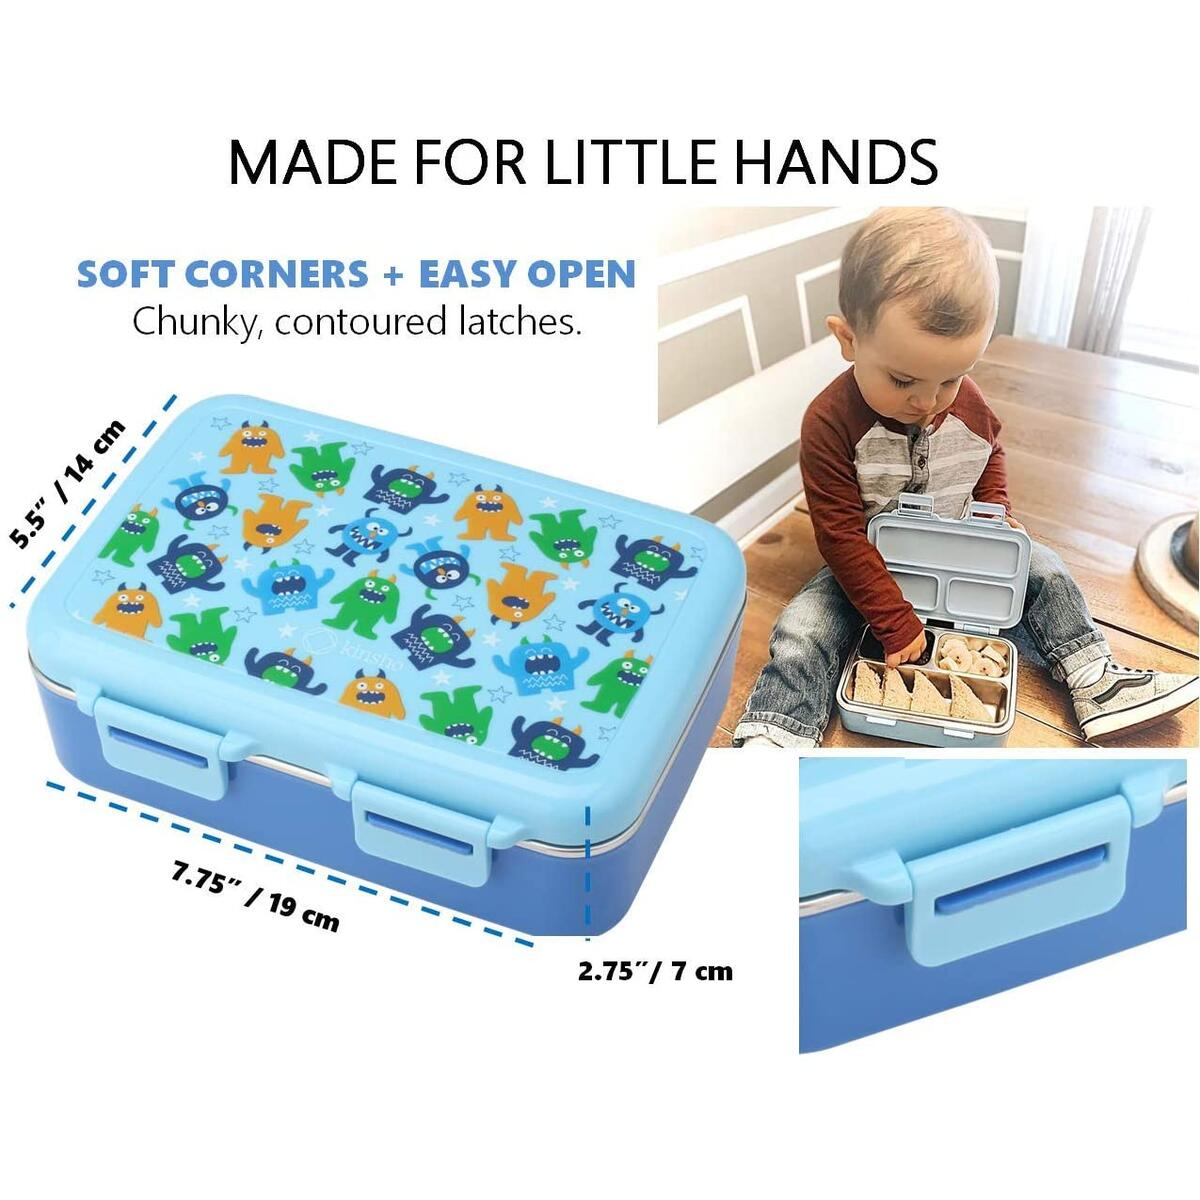 Stainless Steel Toddler Lunch Box for Boys - Blue Monster PRIME ONLY